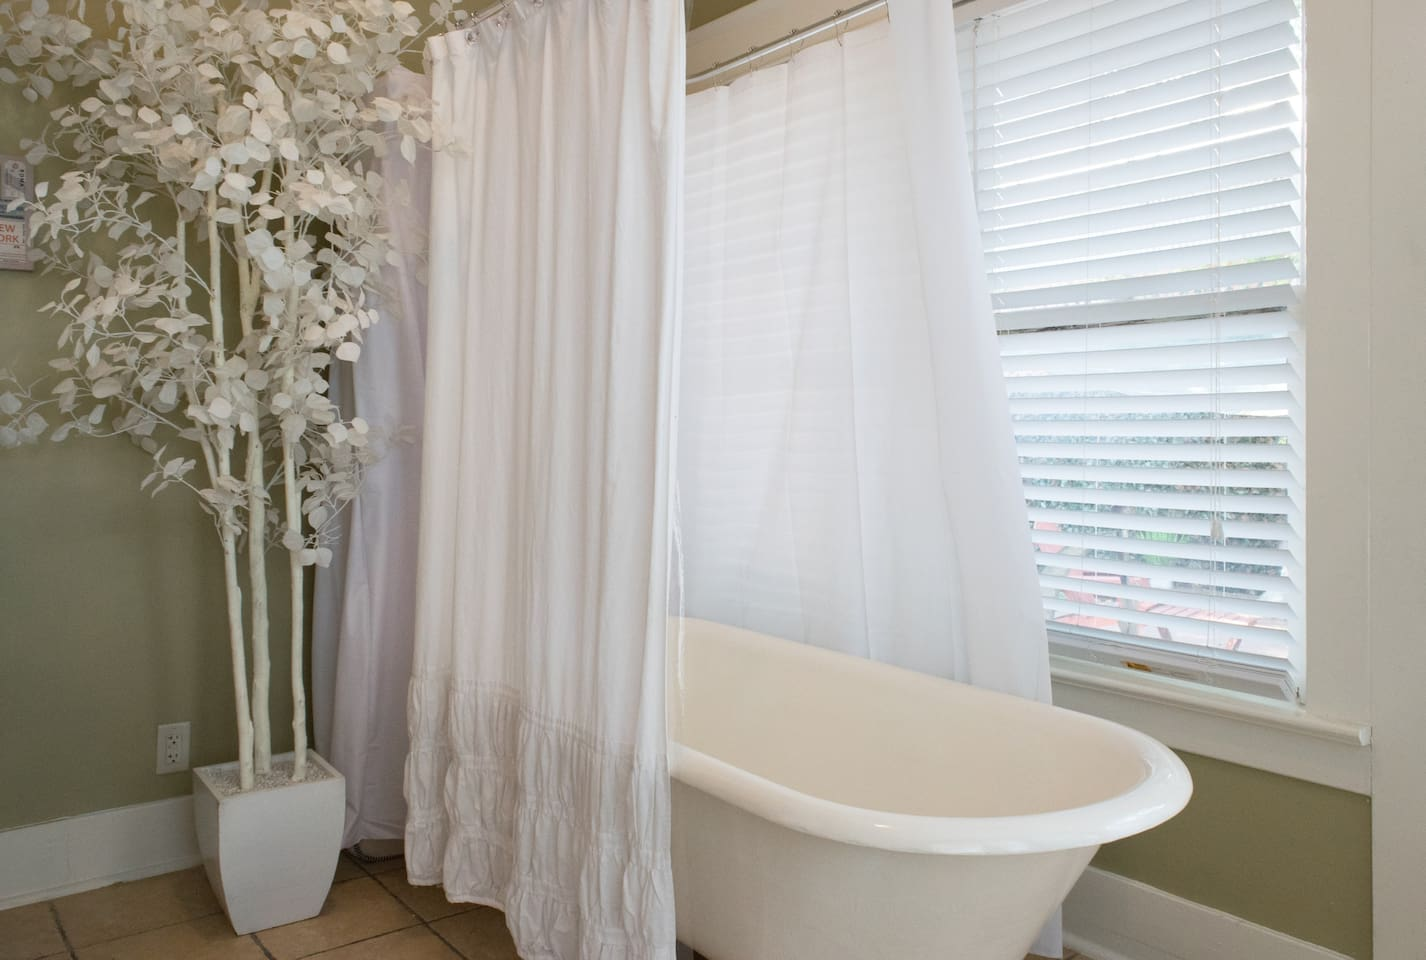 clawfoot tub with shower - open the blinds and you will feel you are showering outside